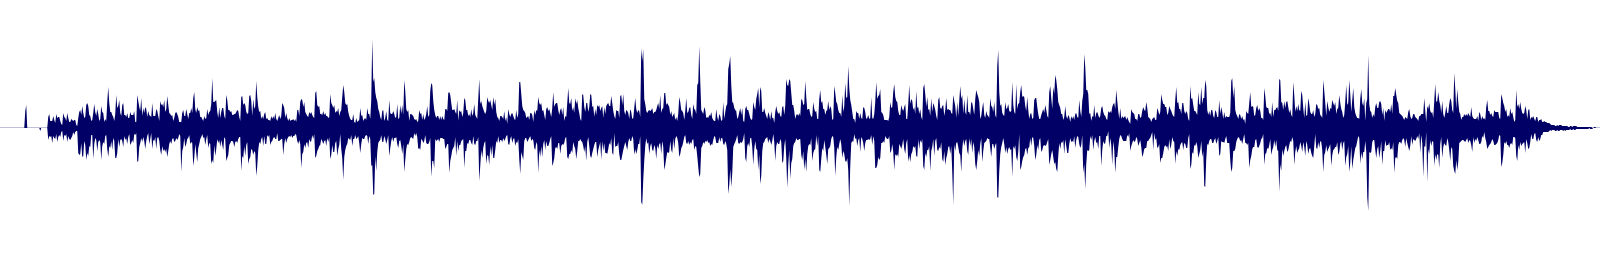 waveform of track #107052